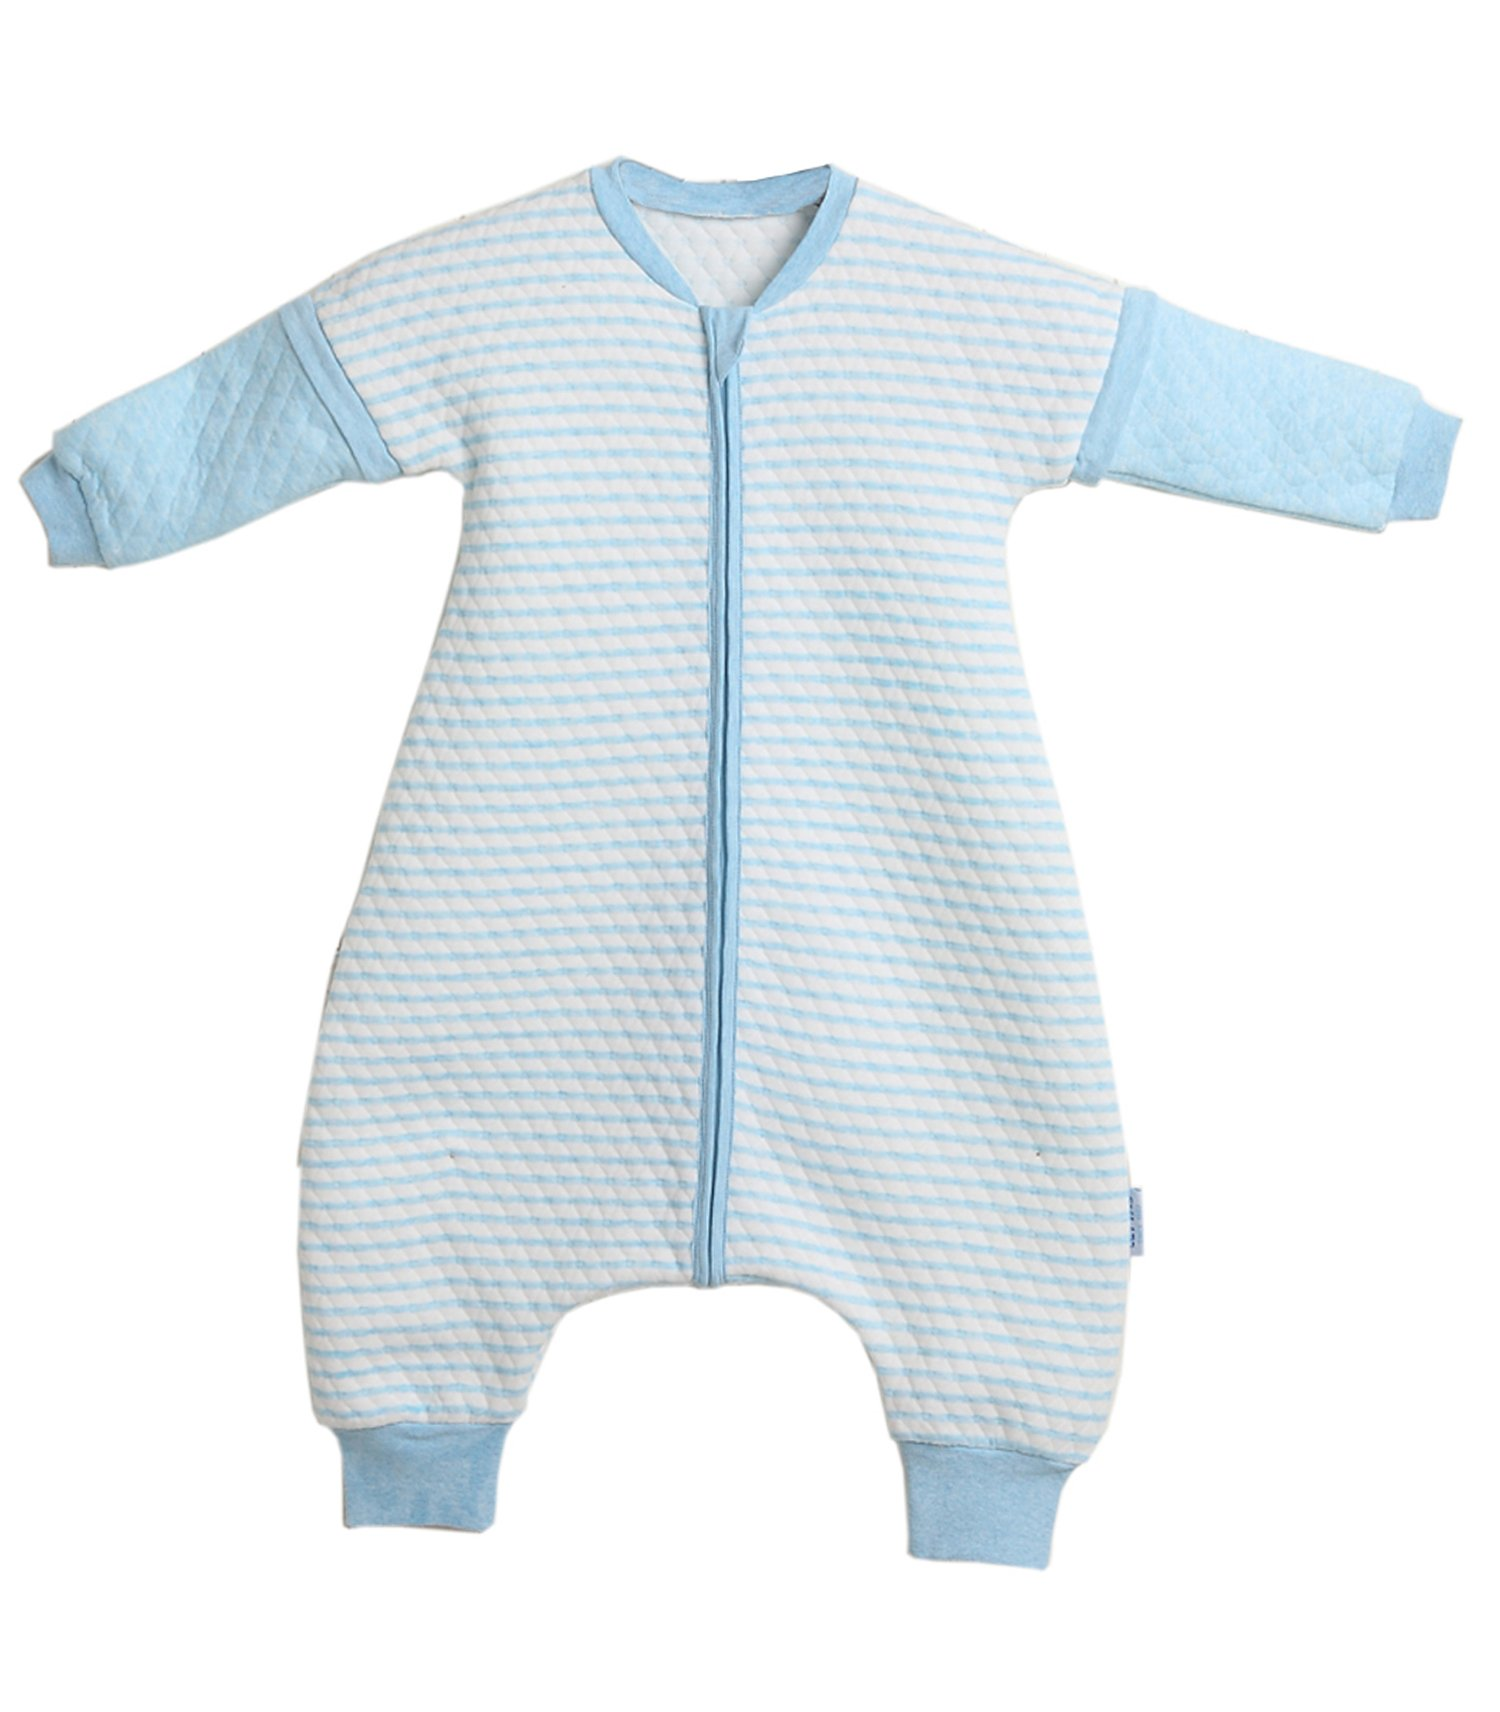 LETTAS Baby Boys and Girls Quilted Cotton Stripe Detachable Sleeve 2.5 Tog Sleeping Bag with Feet for Early Walker Blue (12-24 Months,M)